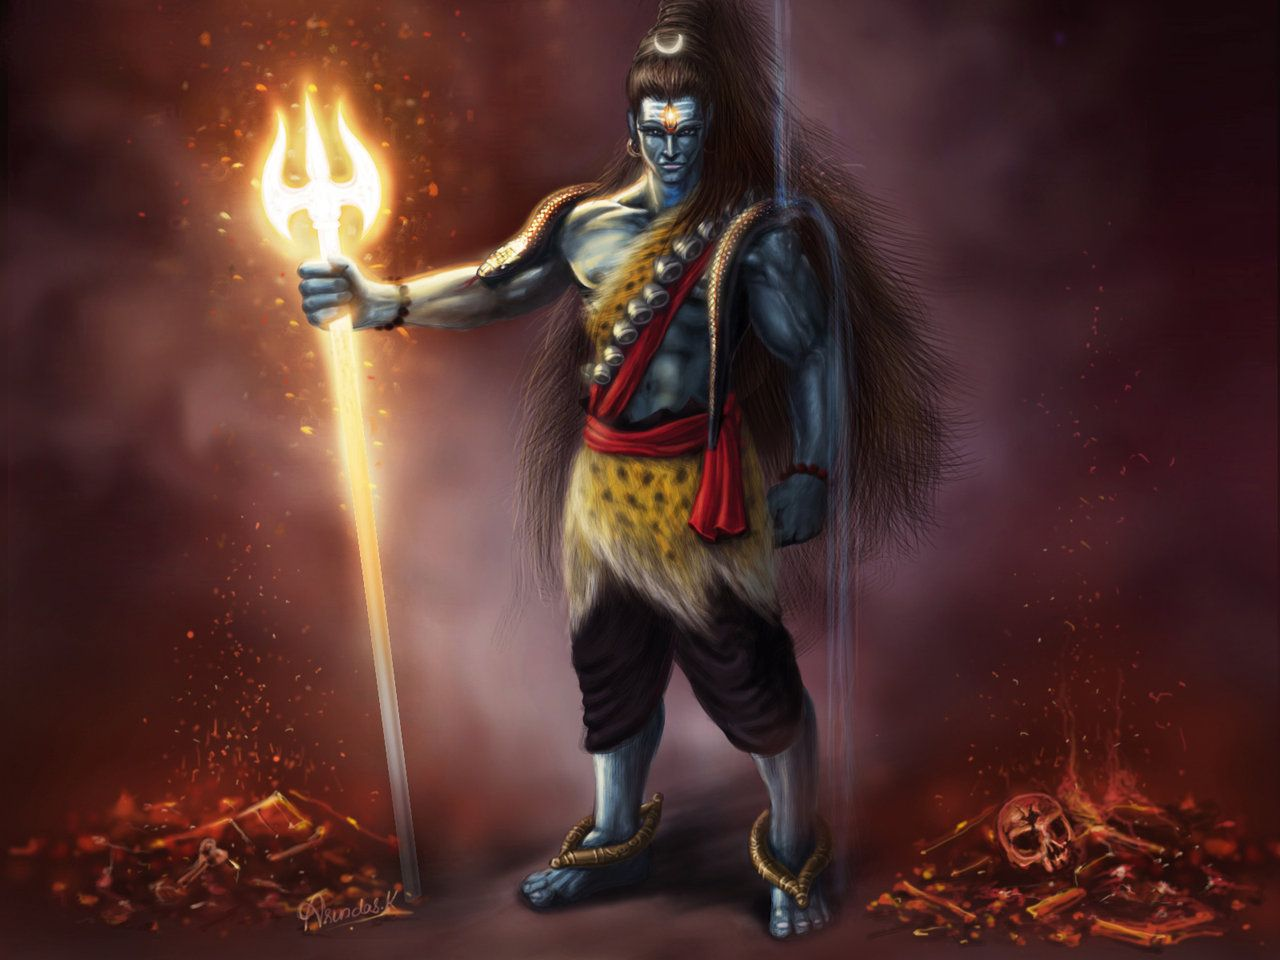 lord shiva animated wallpapers for mobile Archives - HD ...